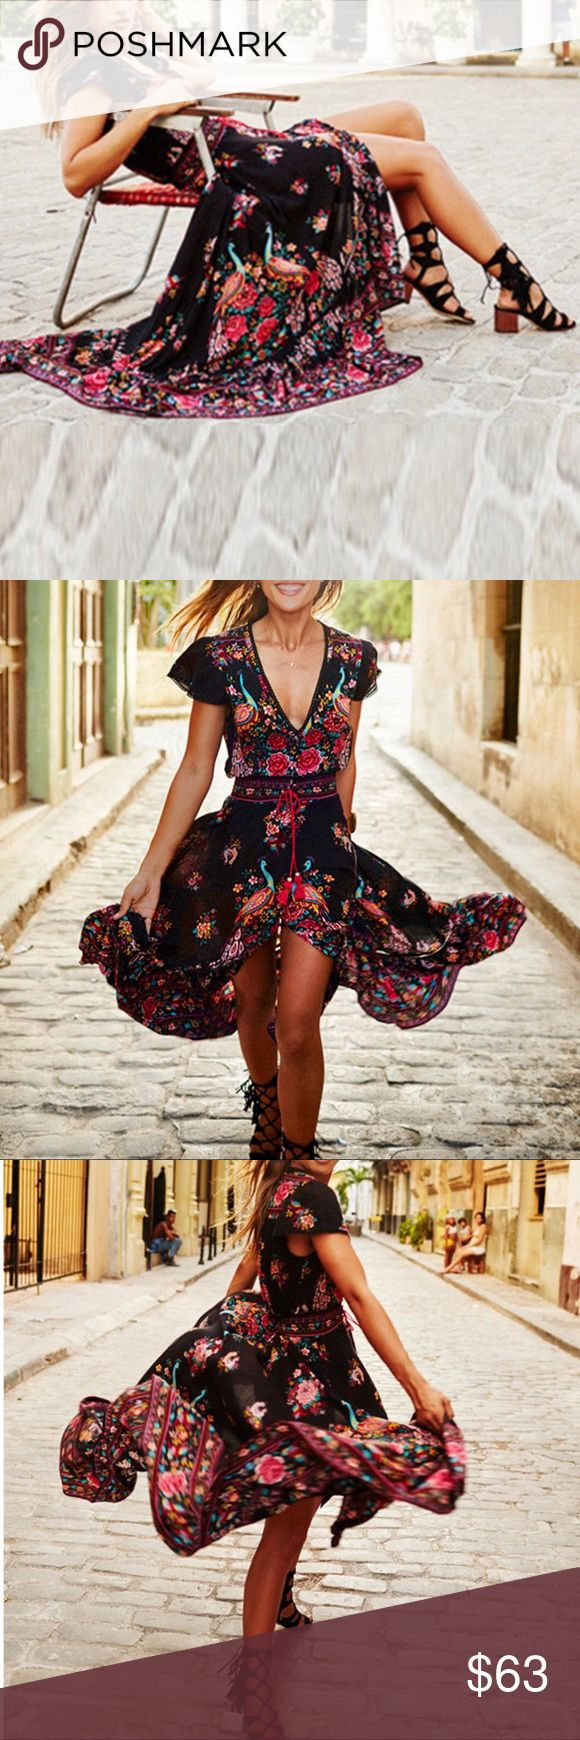 ☮️ NWT VINTAGE BOHO MAXI FLORAL DRESS☮️ ☮️ NWT VINTAGE BOHO MAXI FLORAL DRESS☮️ Lightweight and breathable maxi dress flaunting a gorgeous floral print and flowy silhouette. This fashionable staple is perfect for vibrant walks in nature and boho-chic looks on a casual day out Deep V-neck Short sleeve Self tie waist belt Slit detail on front Material: Cotton, polyester Available sizes Small to XXL (see size chart) Dresses Maxi